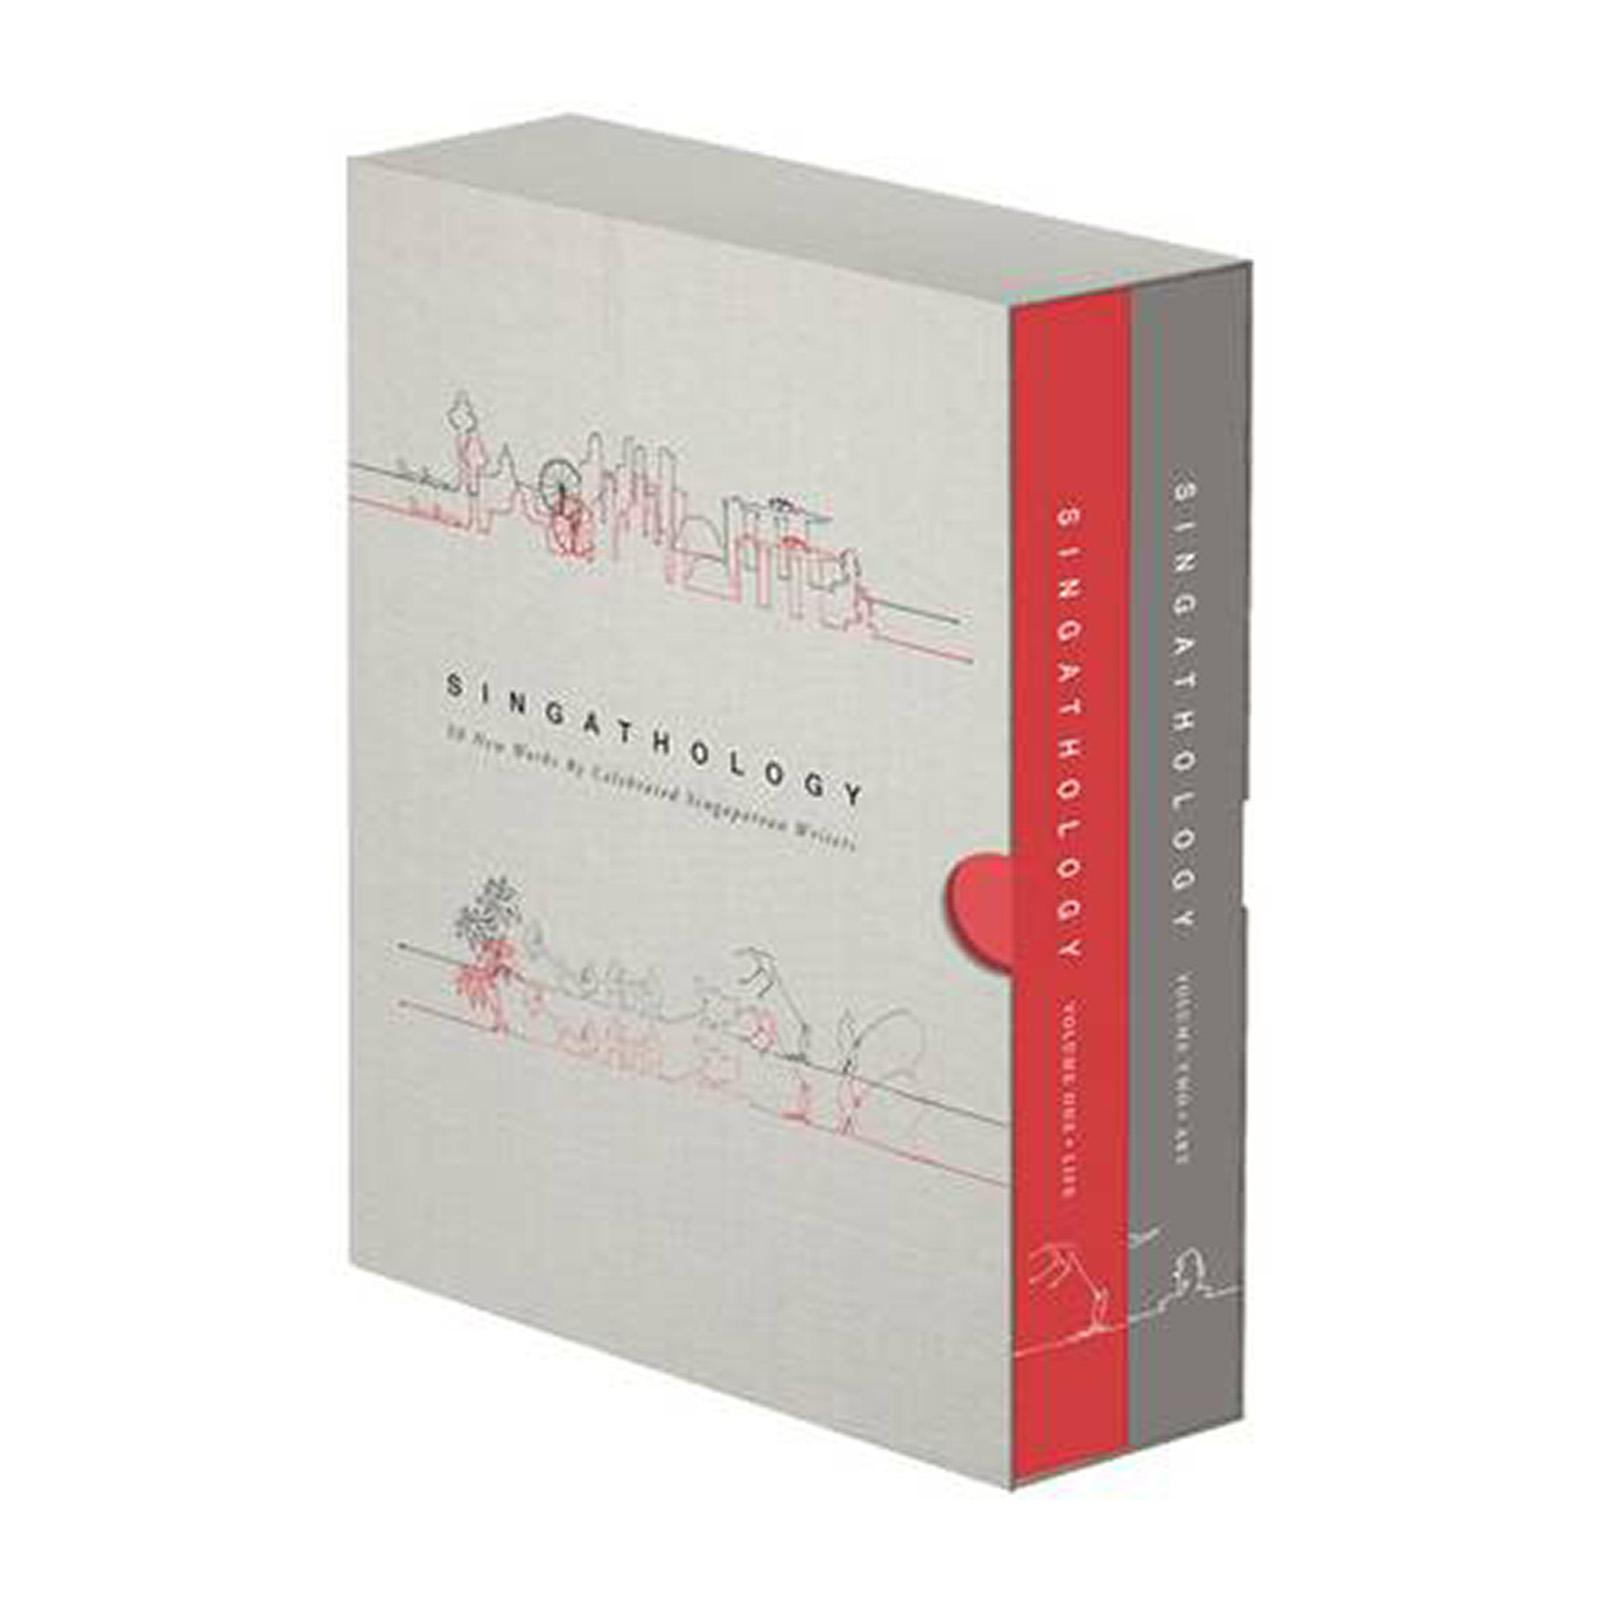 Singathology: 50 New Works By Celebrated Singaporean Writers (Paperback)